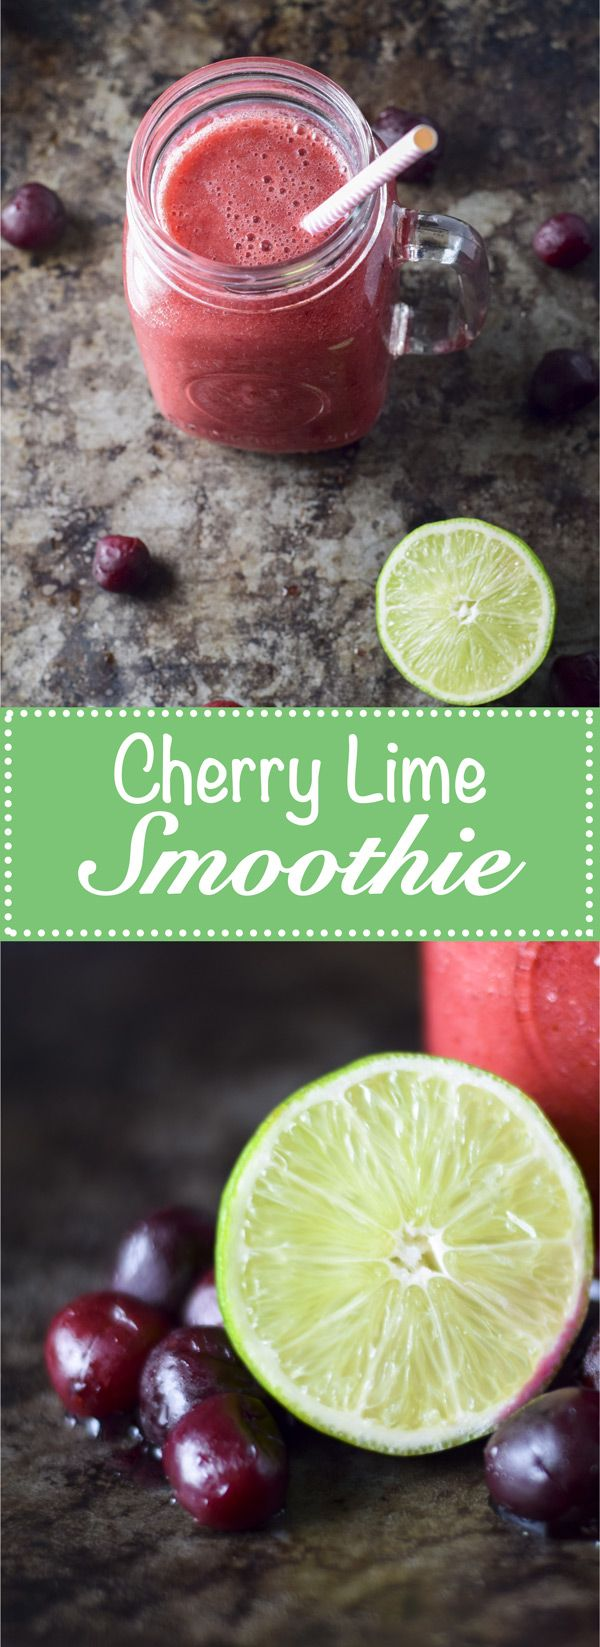 Cherry Lime Smoothie Recipe - This delectable and tart vegan smoothie has no dairy, no sugar, and uses only water and fresh squeezed limes as its base